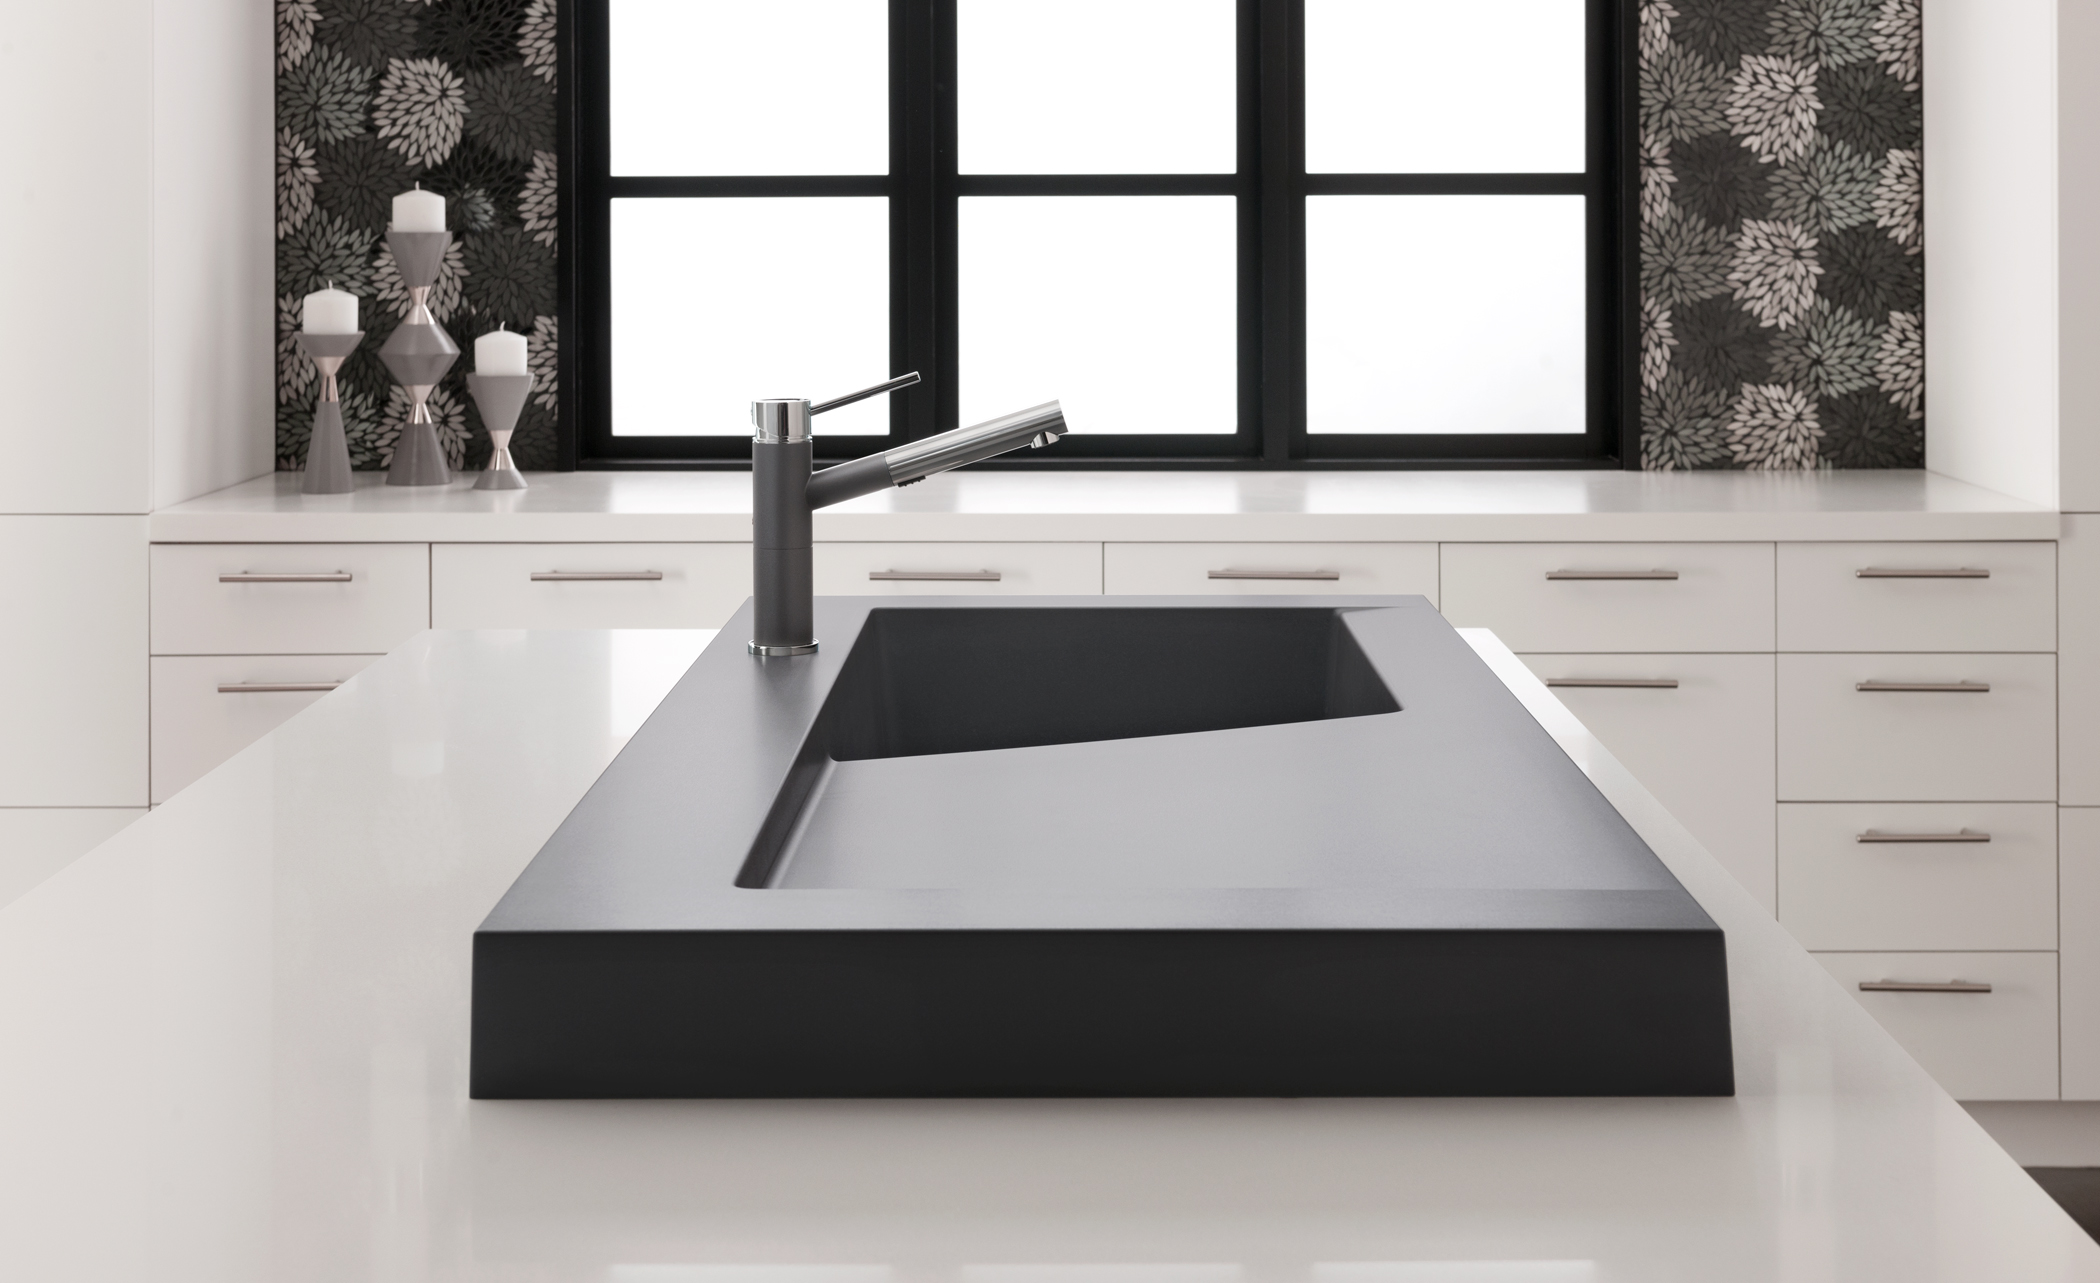 Blanc's Modex sink and Alta Faucet